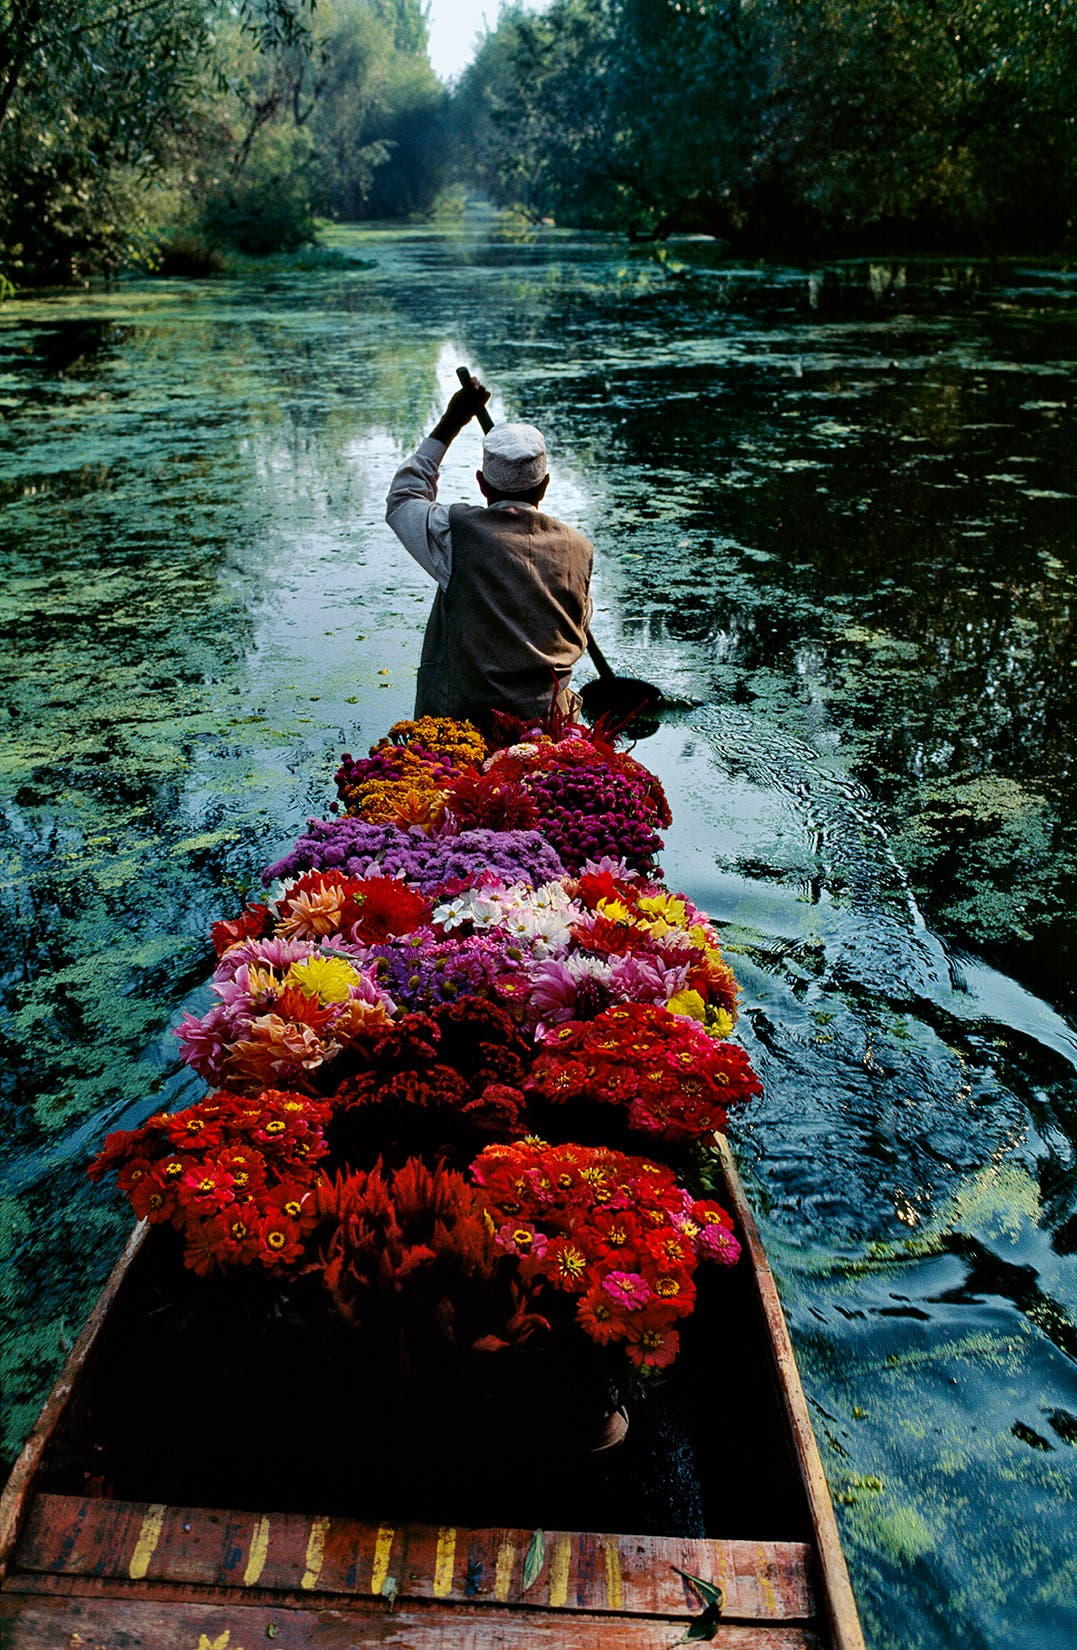 Magnum Photographer Steve McCurry on The Importance of Being Curious